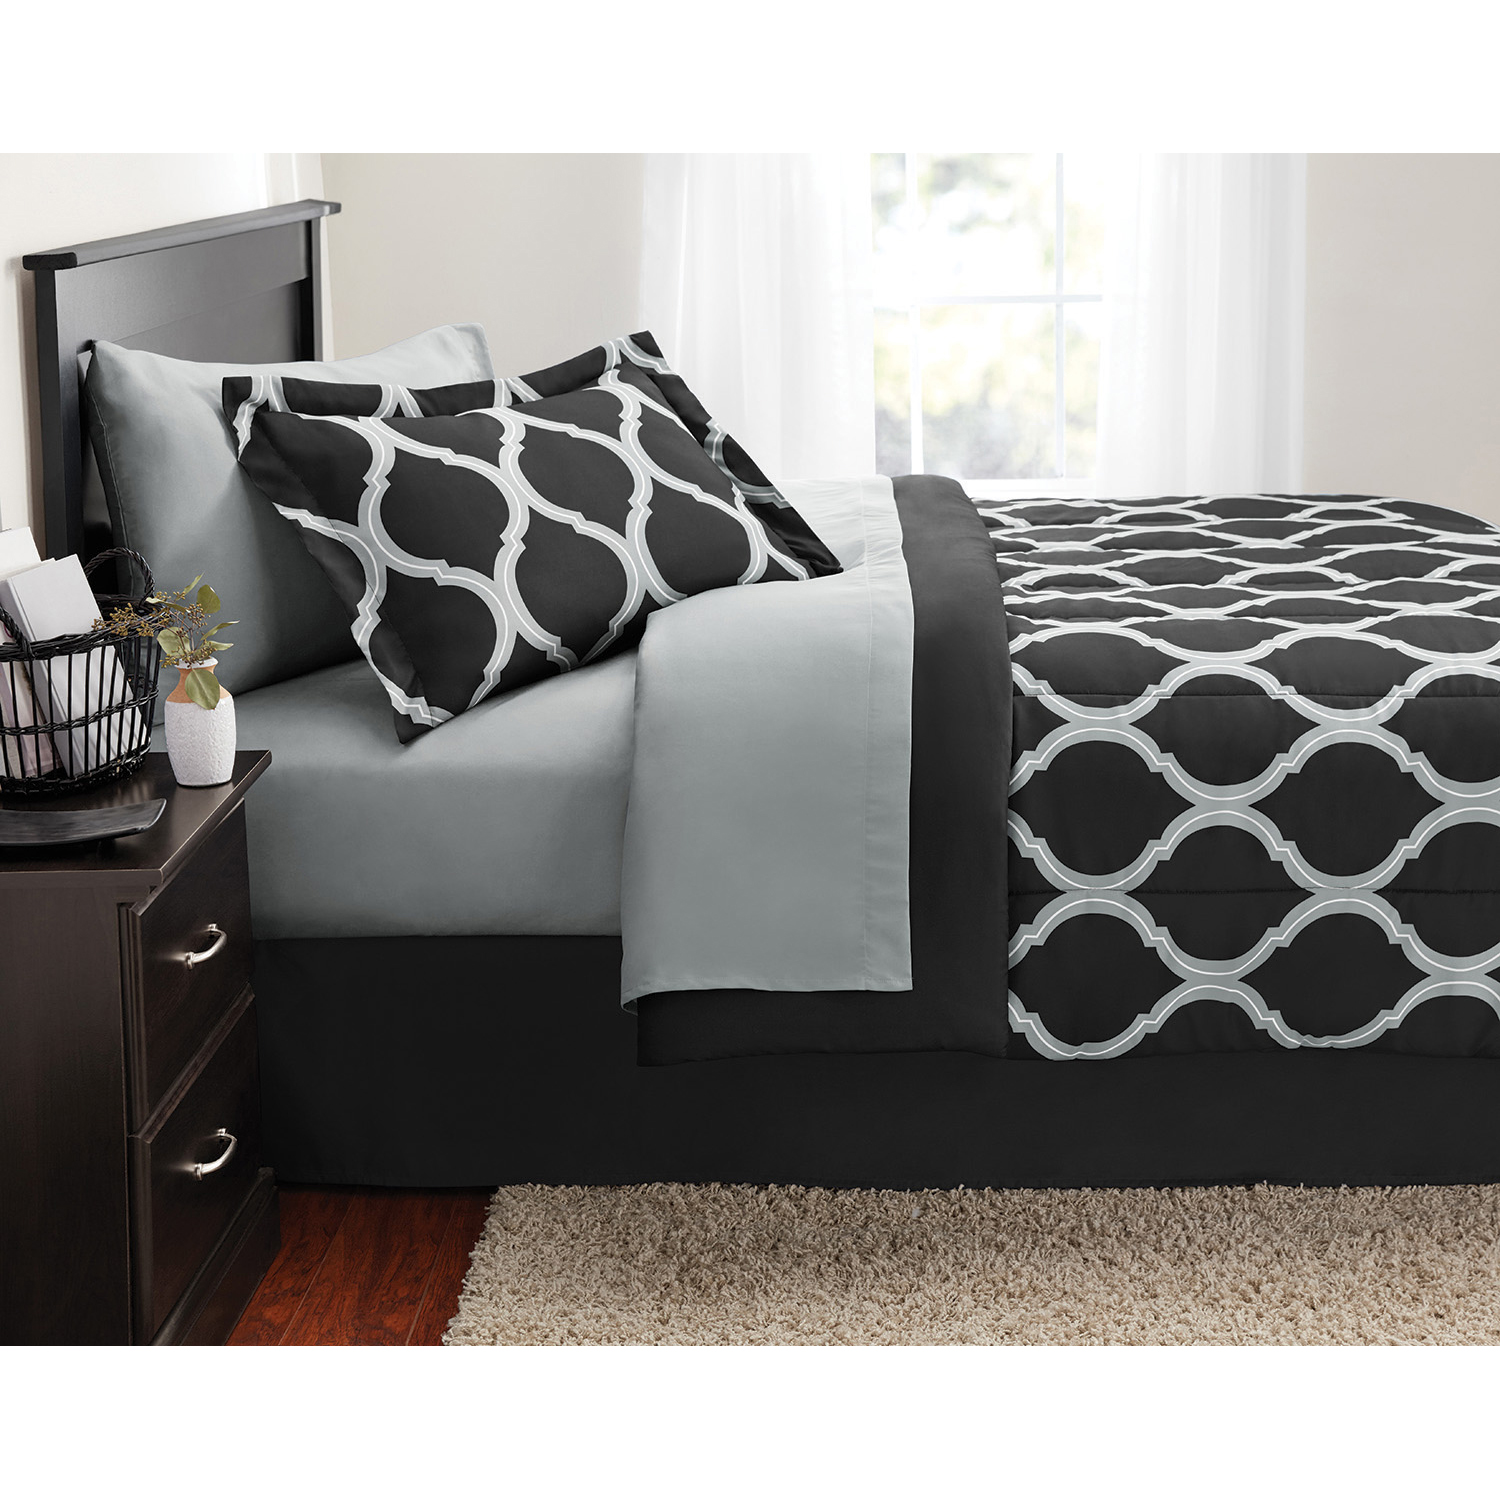 Mainstays Geometric Bed in a Bag Bedding Set